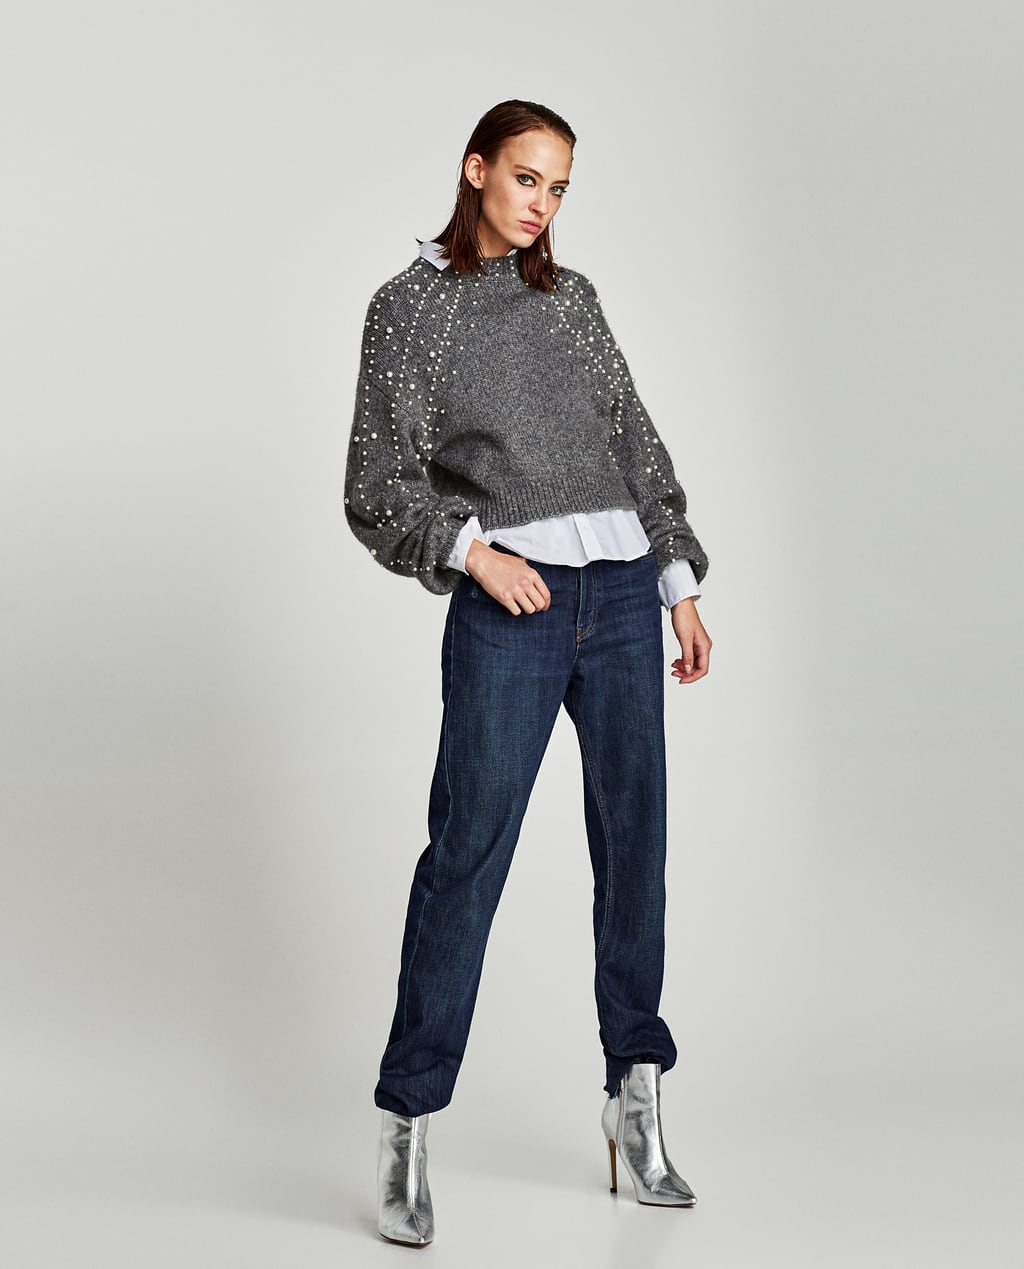 CROPPED SWEATER WITH FAUX PEARLS - View All-KNITWEAR-WOMAN-SALE ...